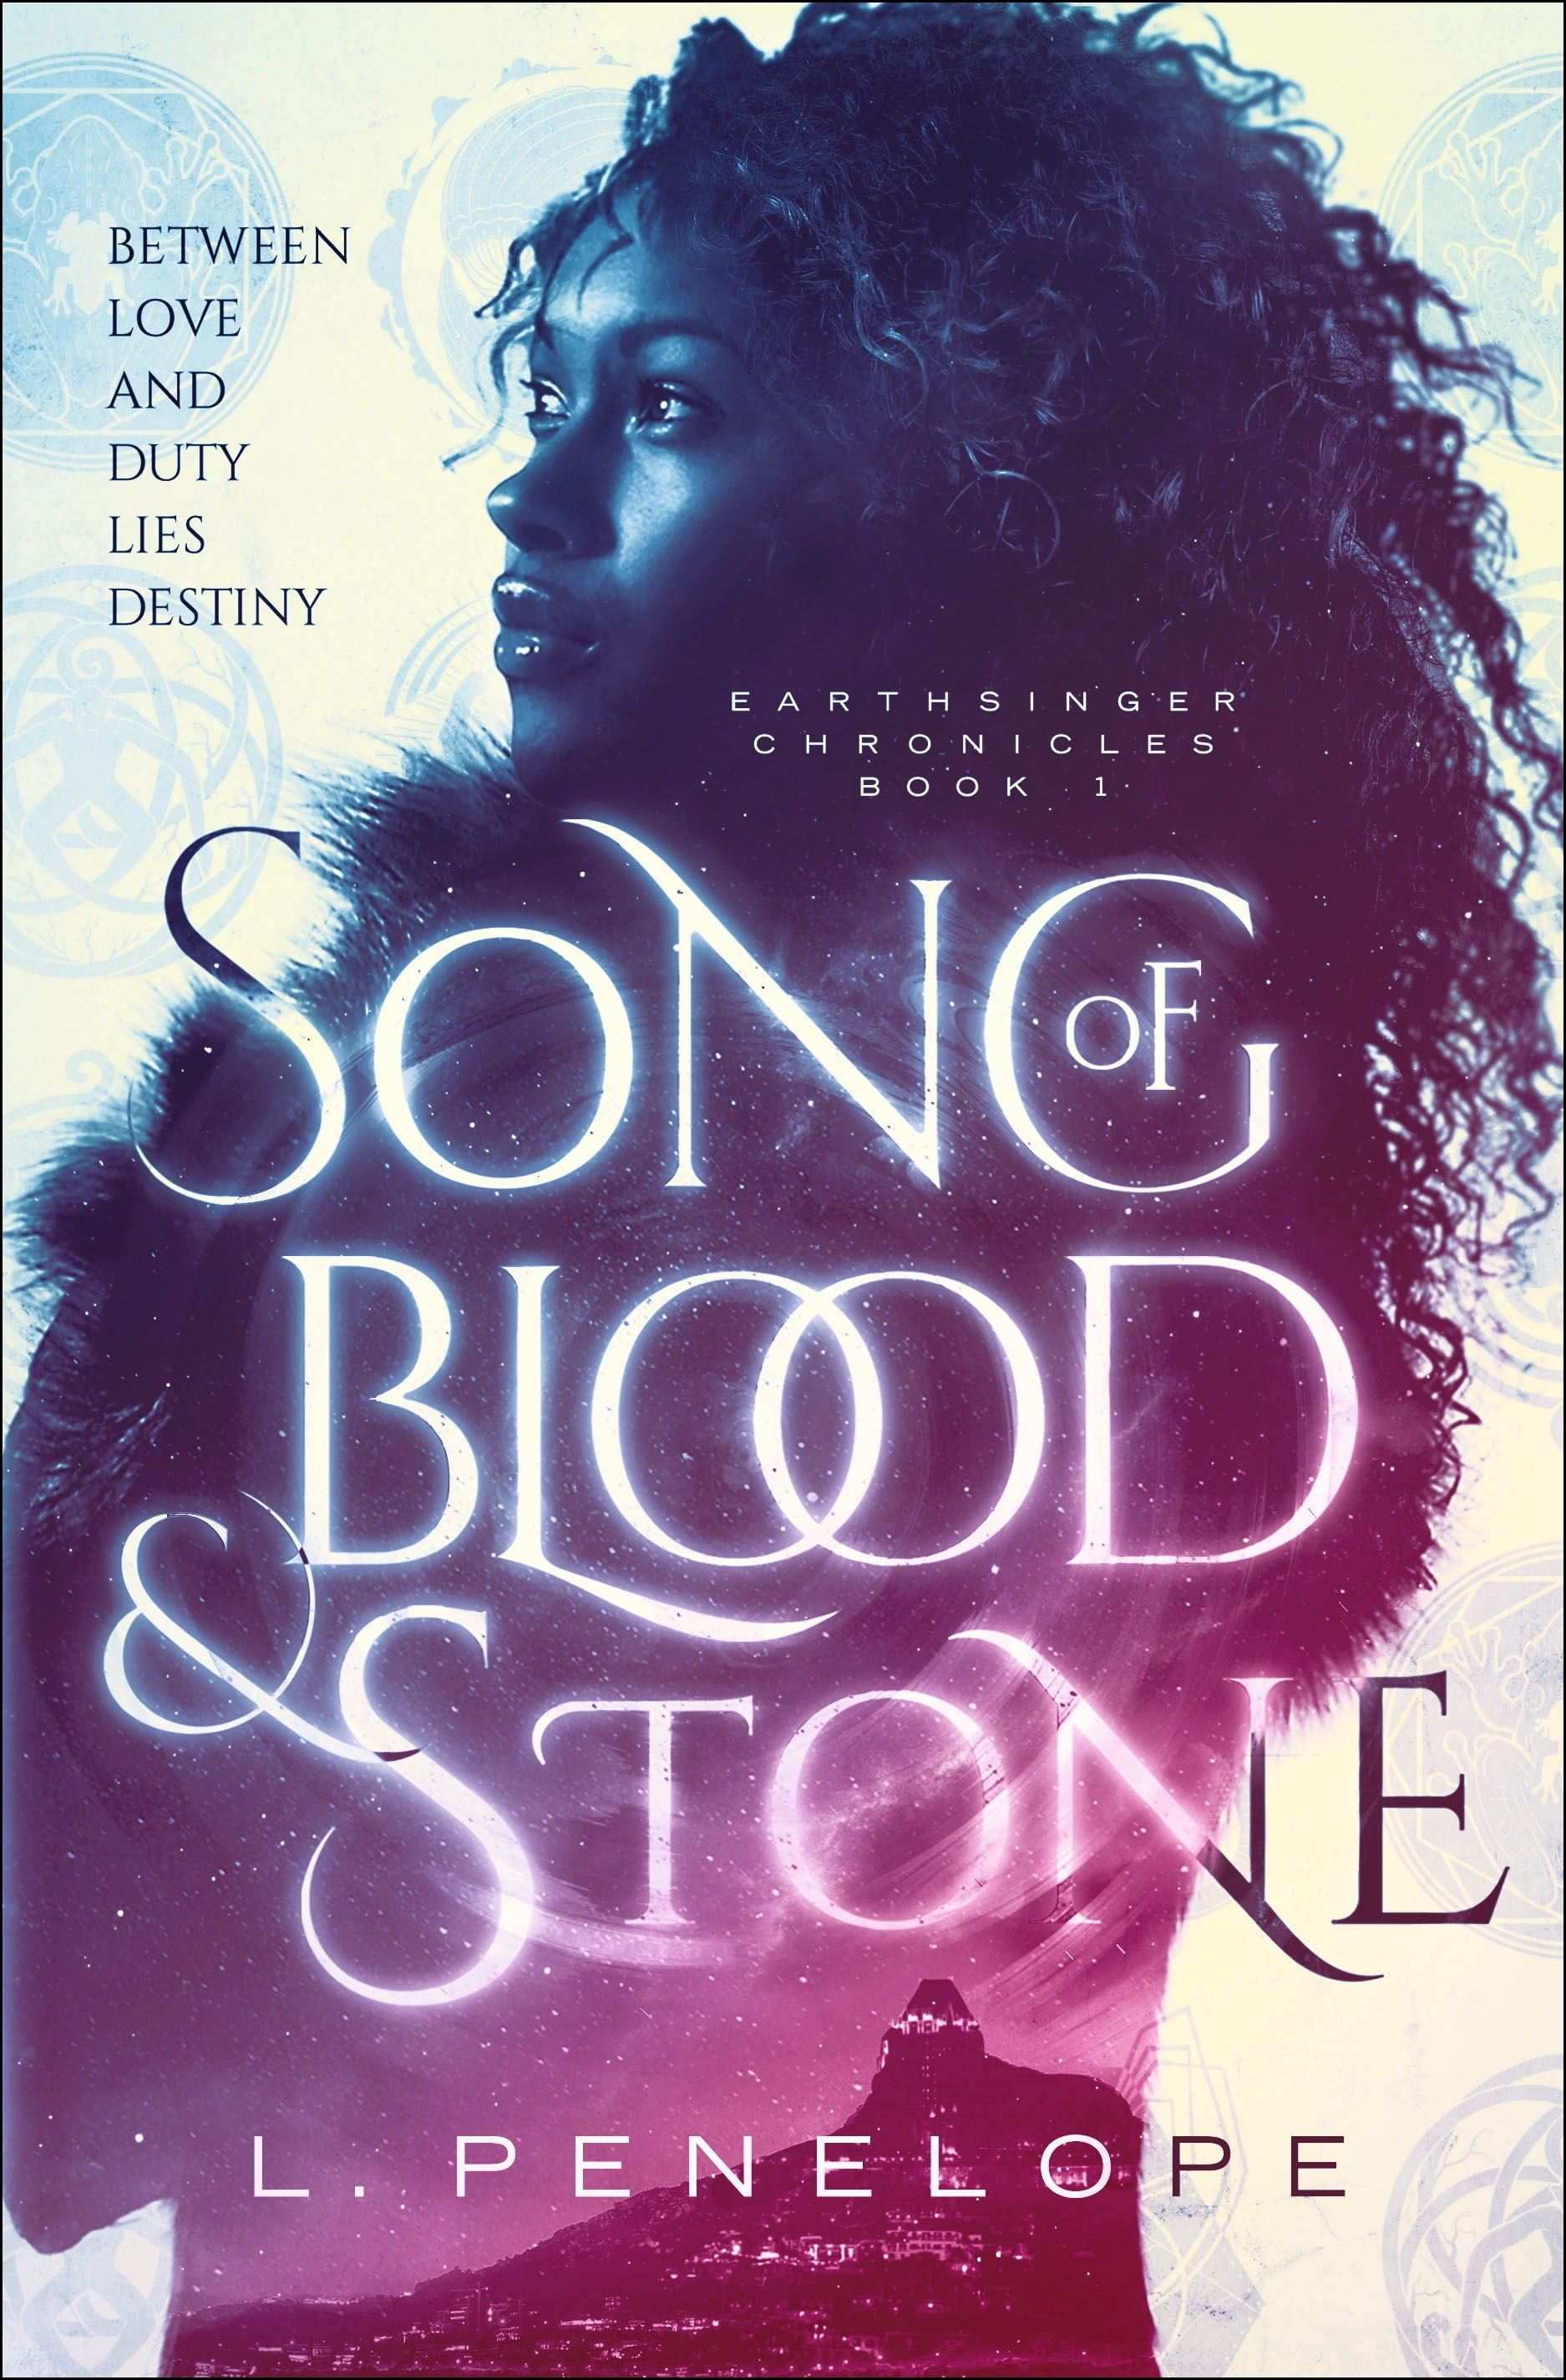 The cover of Song of Blood and Stone